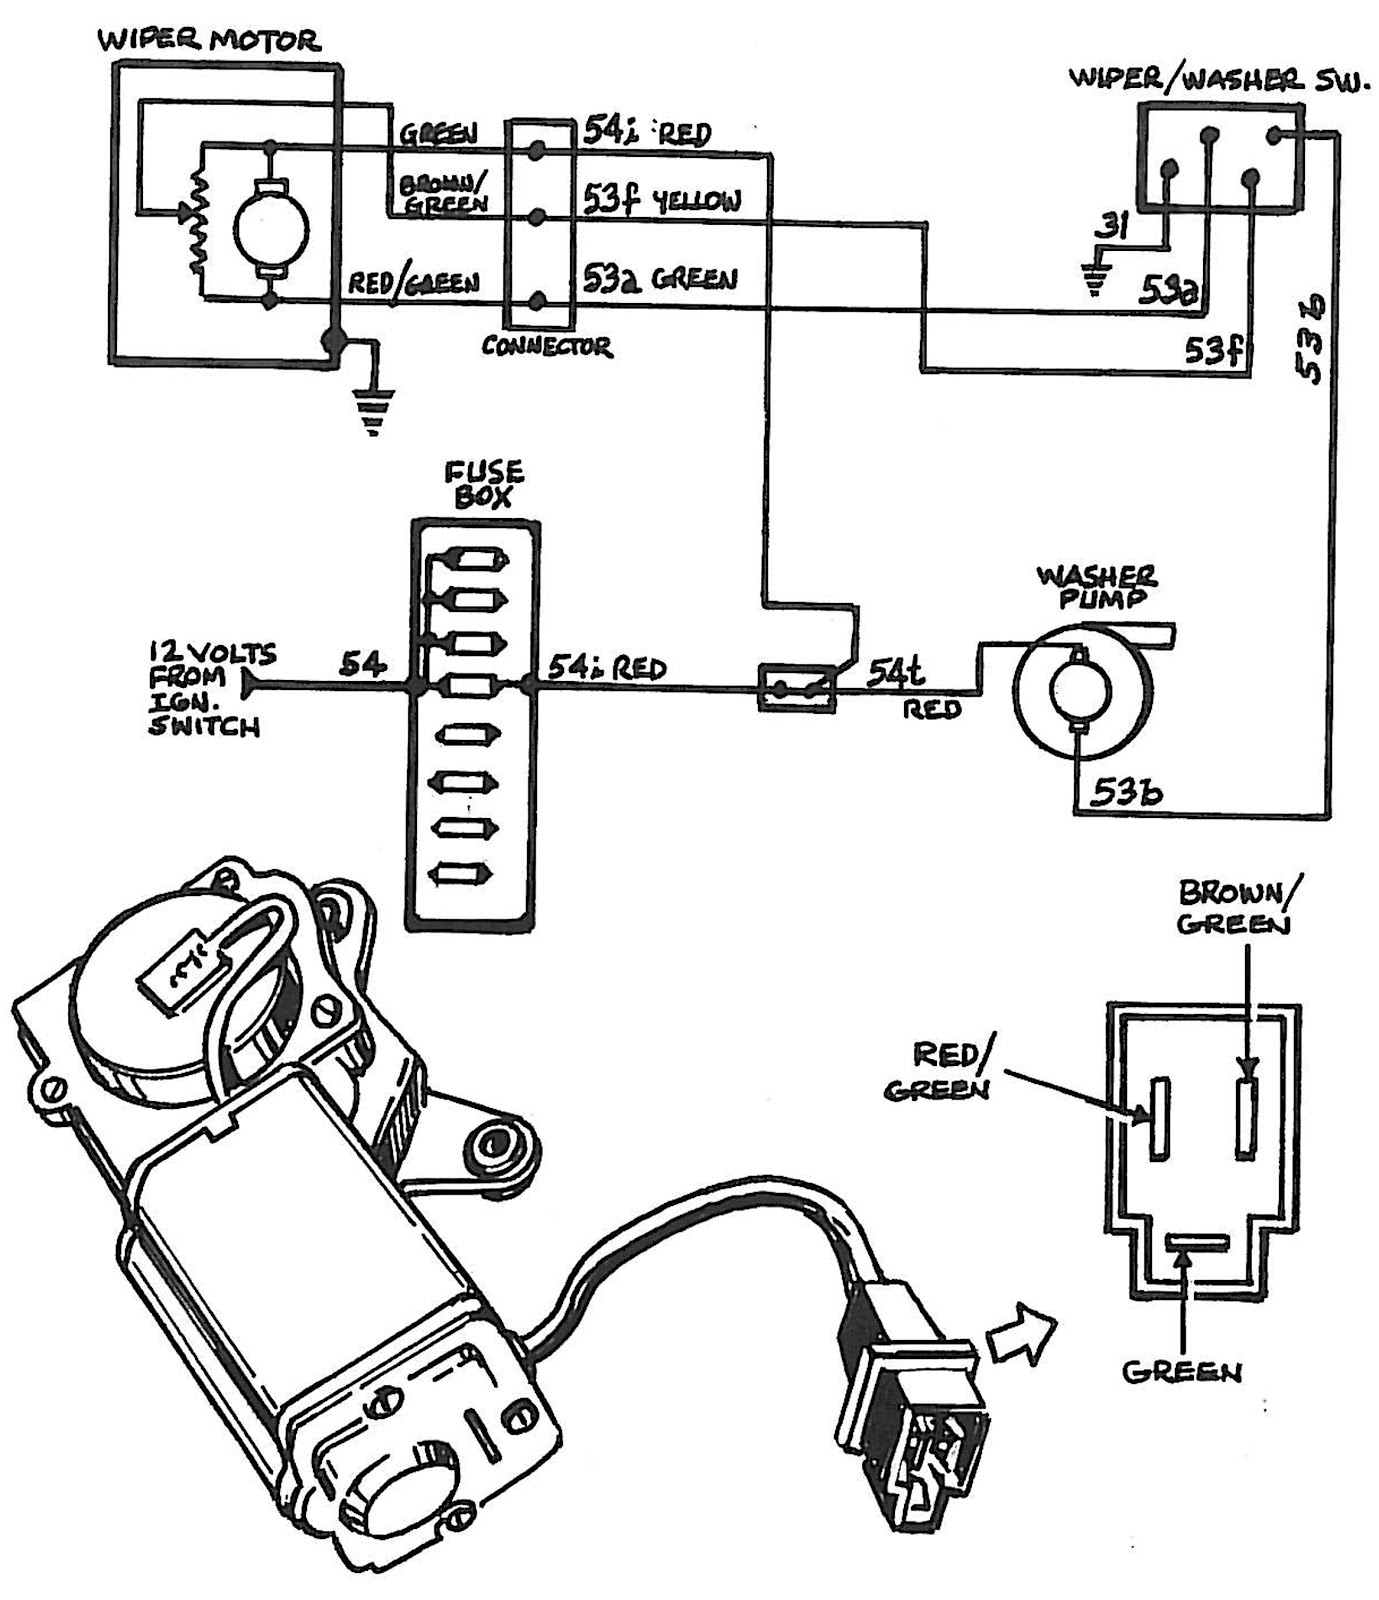 1999 Mitsubishi Galant Es Fuse Box as well Dash and tail lights not working moreover Gmc Envoy Wiring Harness Problems G107 in addition Kia Rio Door Parts Diagram besides P 0996b43f802c531f. on 2002 saturn starter replacement